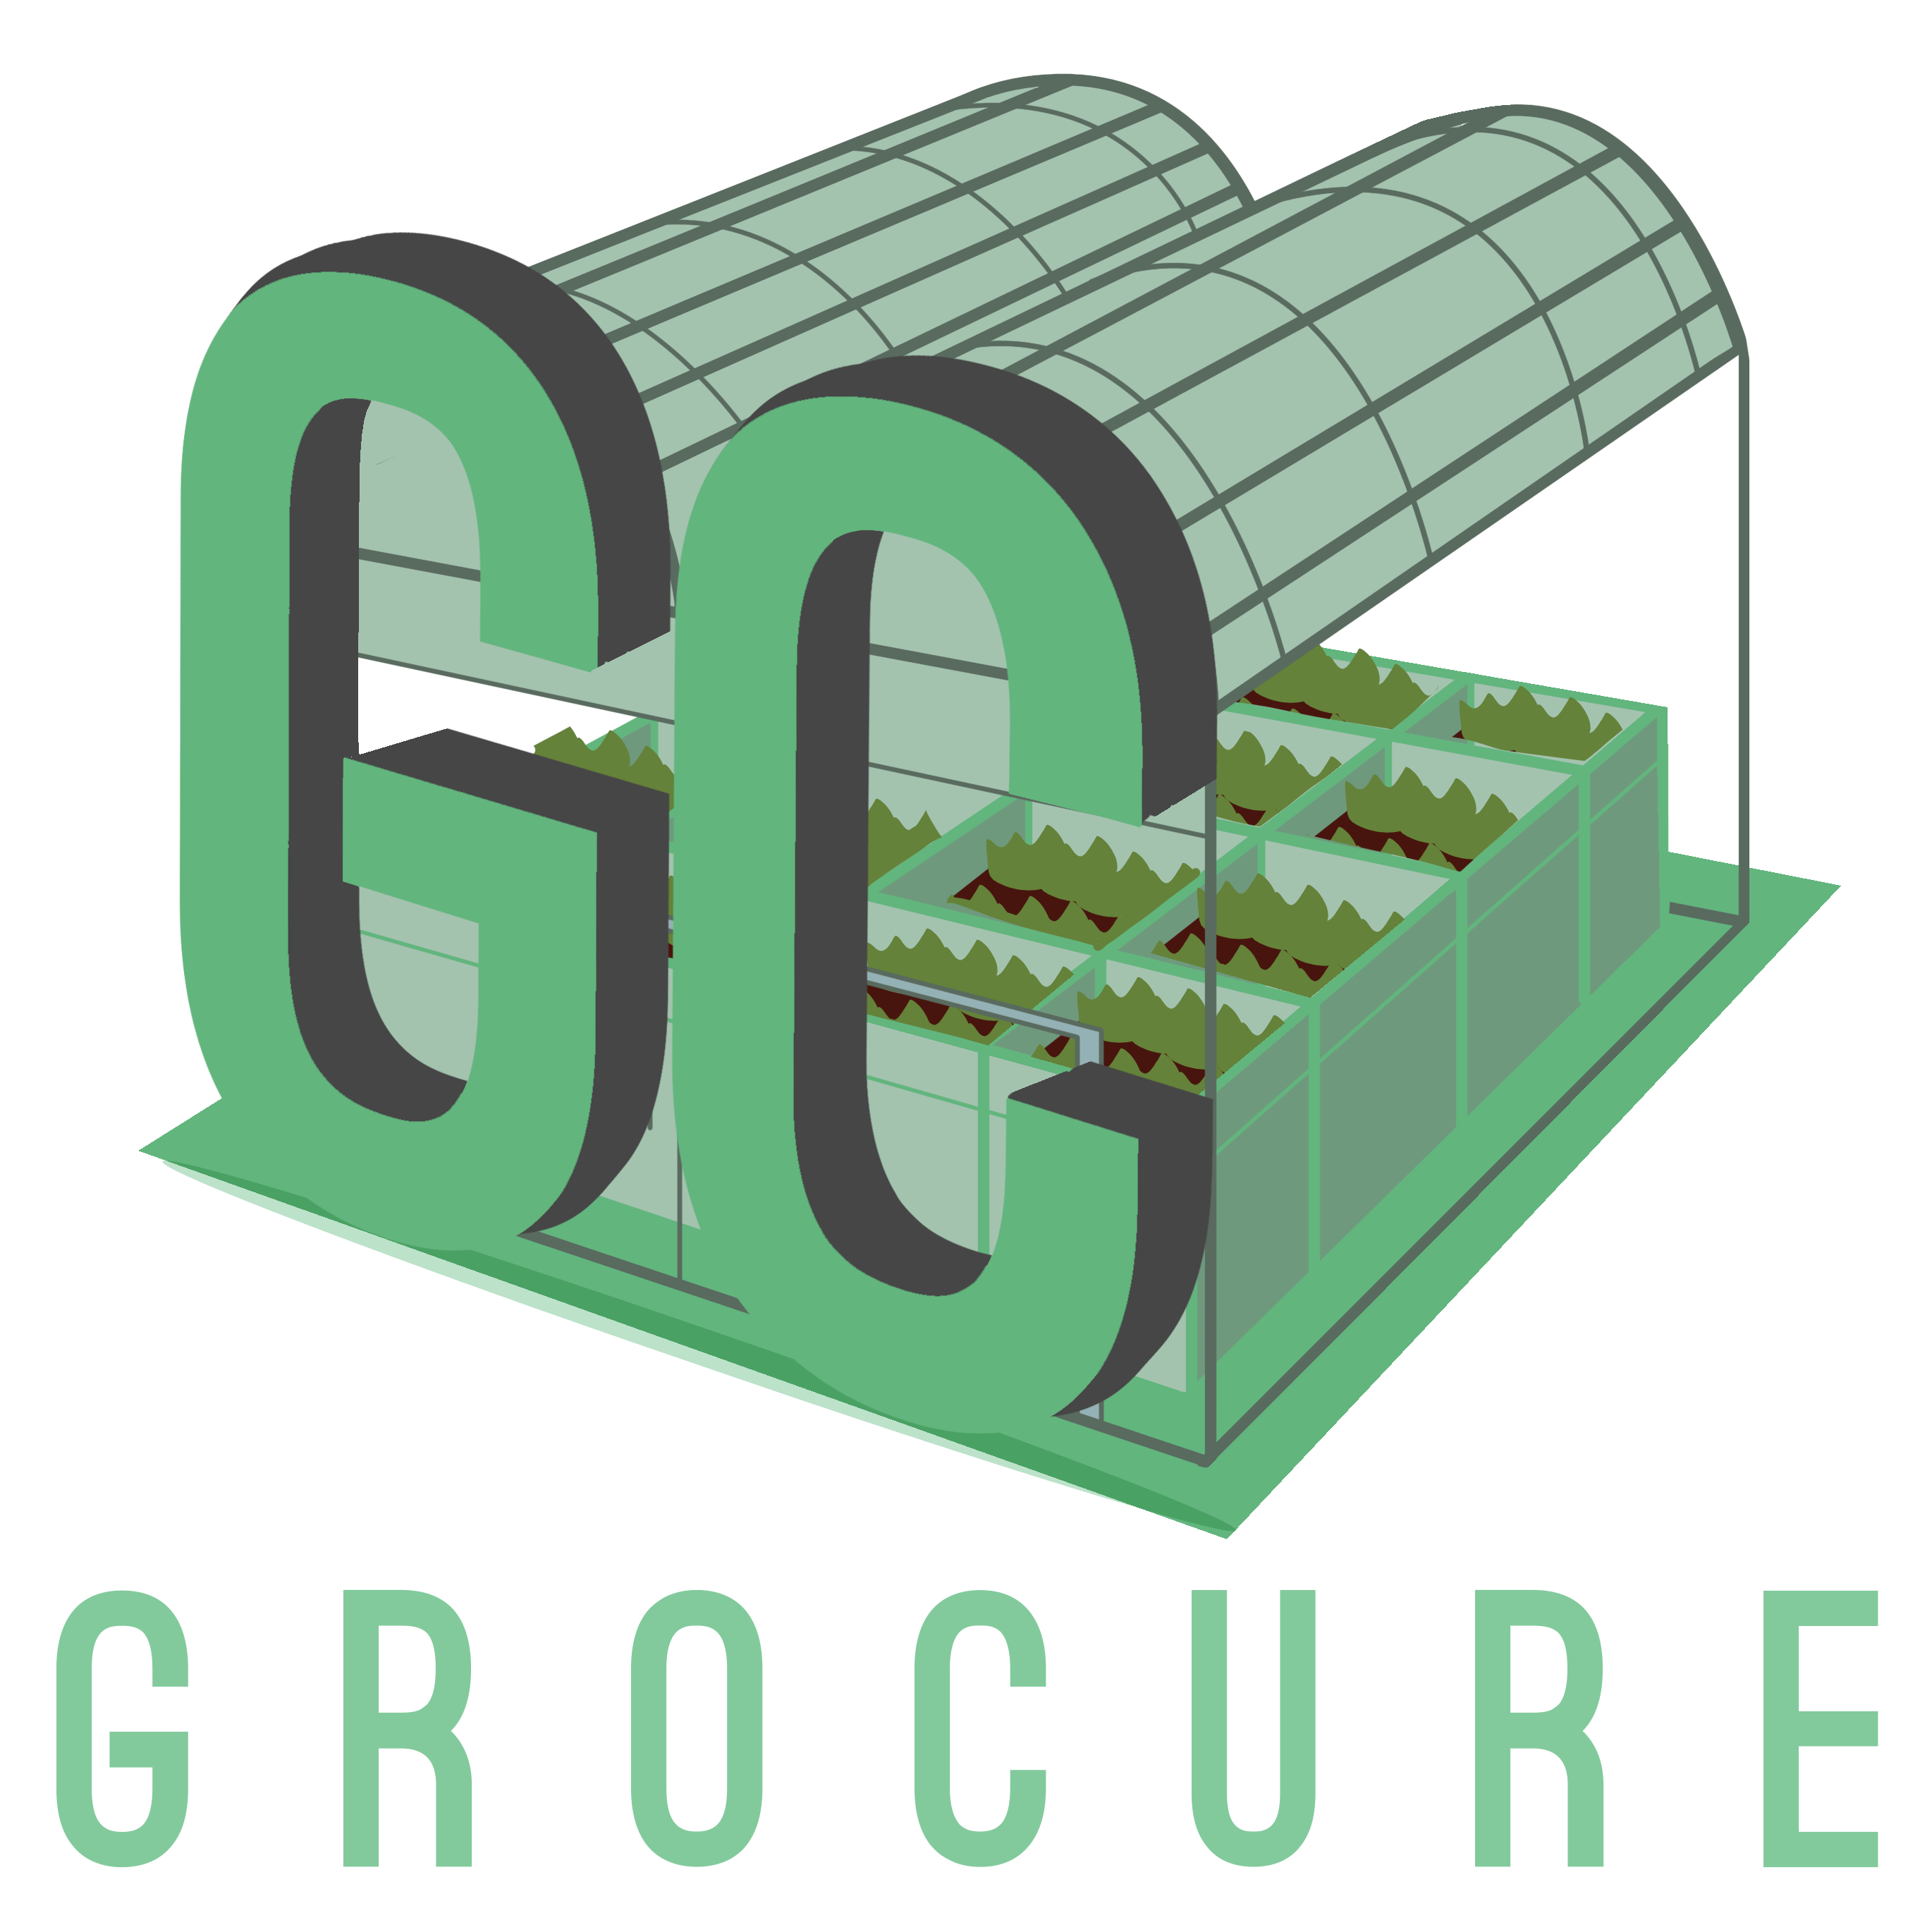 Clean clipart sanitation. Grocure crop solution water